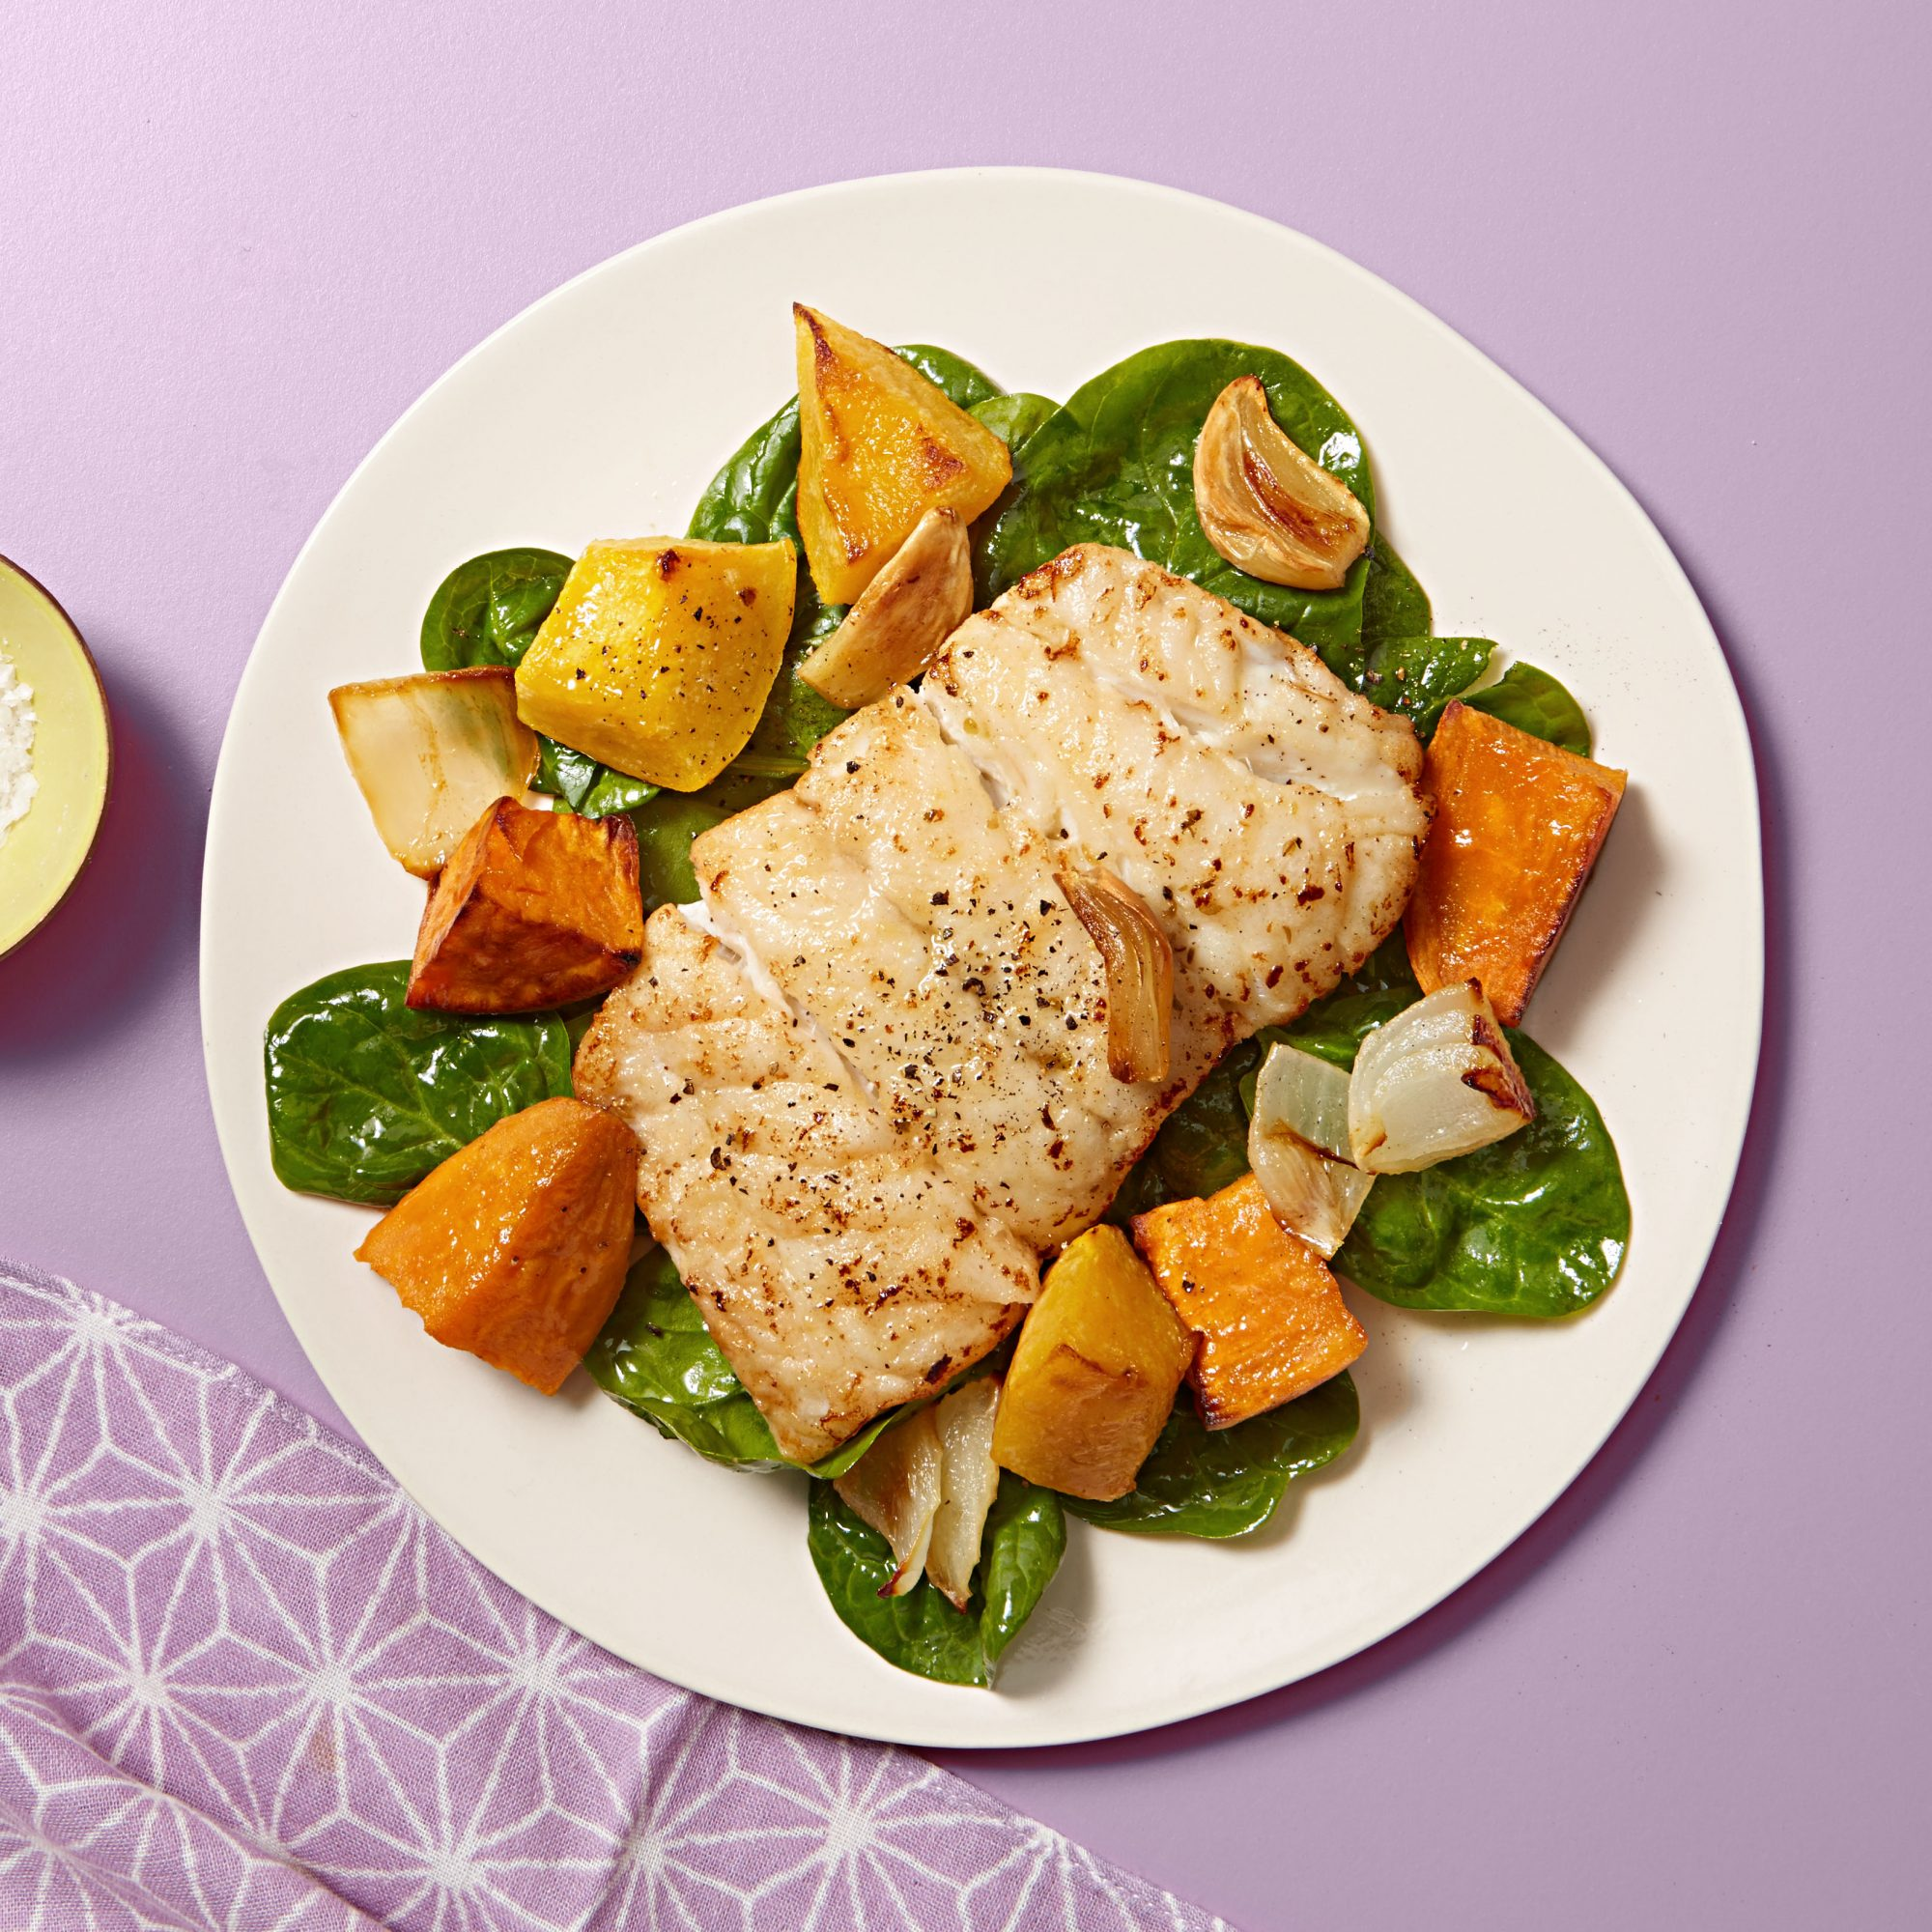 Pan-Seared Cod with Spinach & Roasted Fall Vegetables